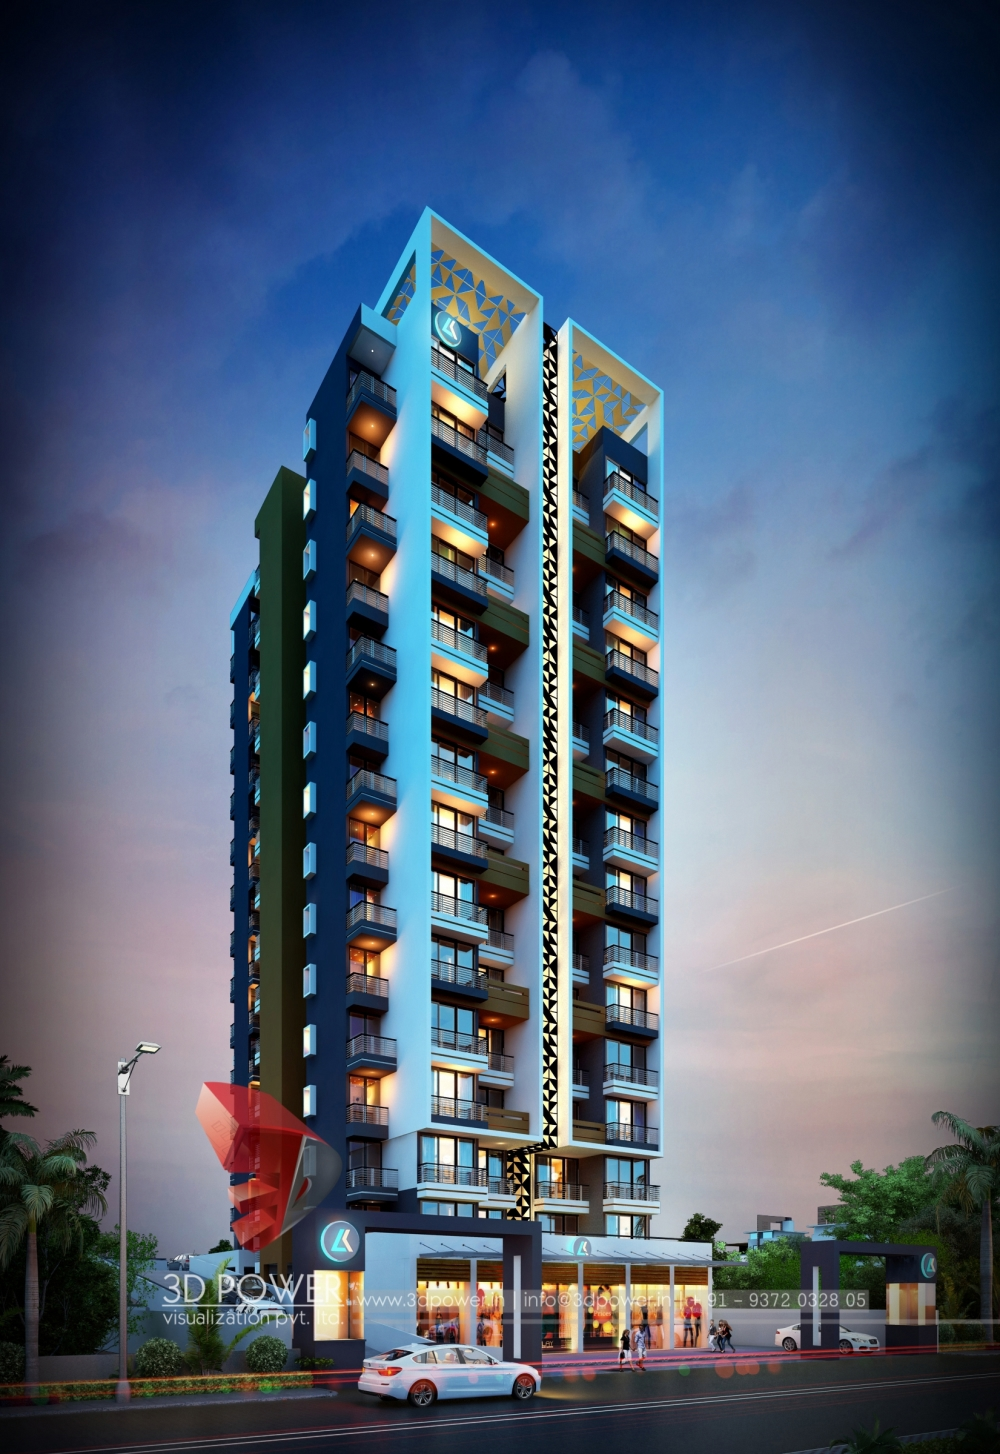 Apartment Visualization Hyderabad | 3D Power